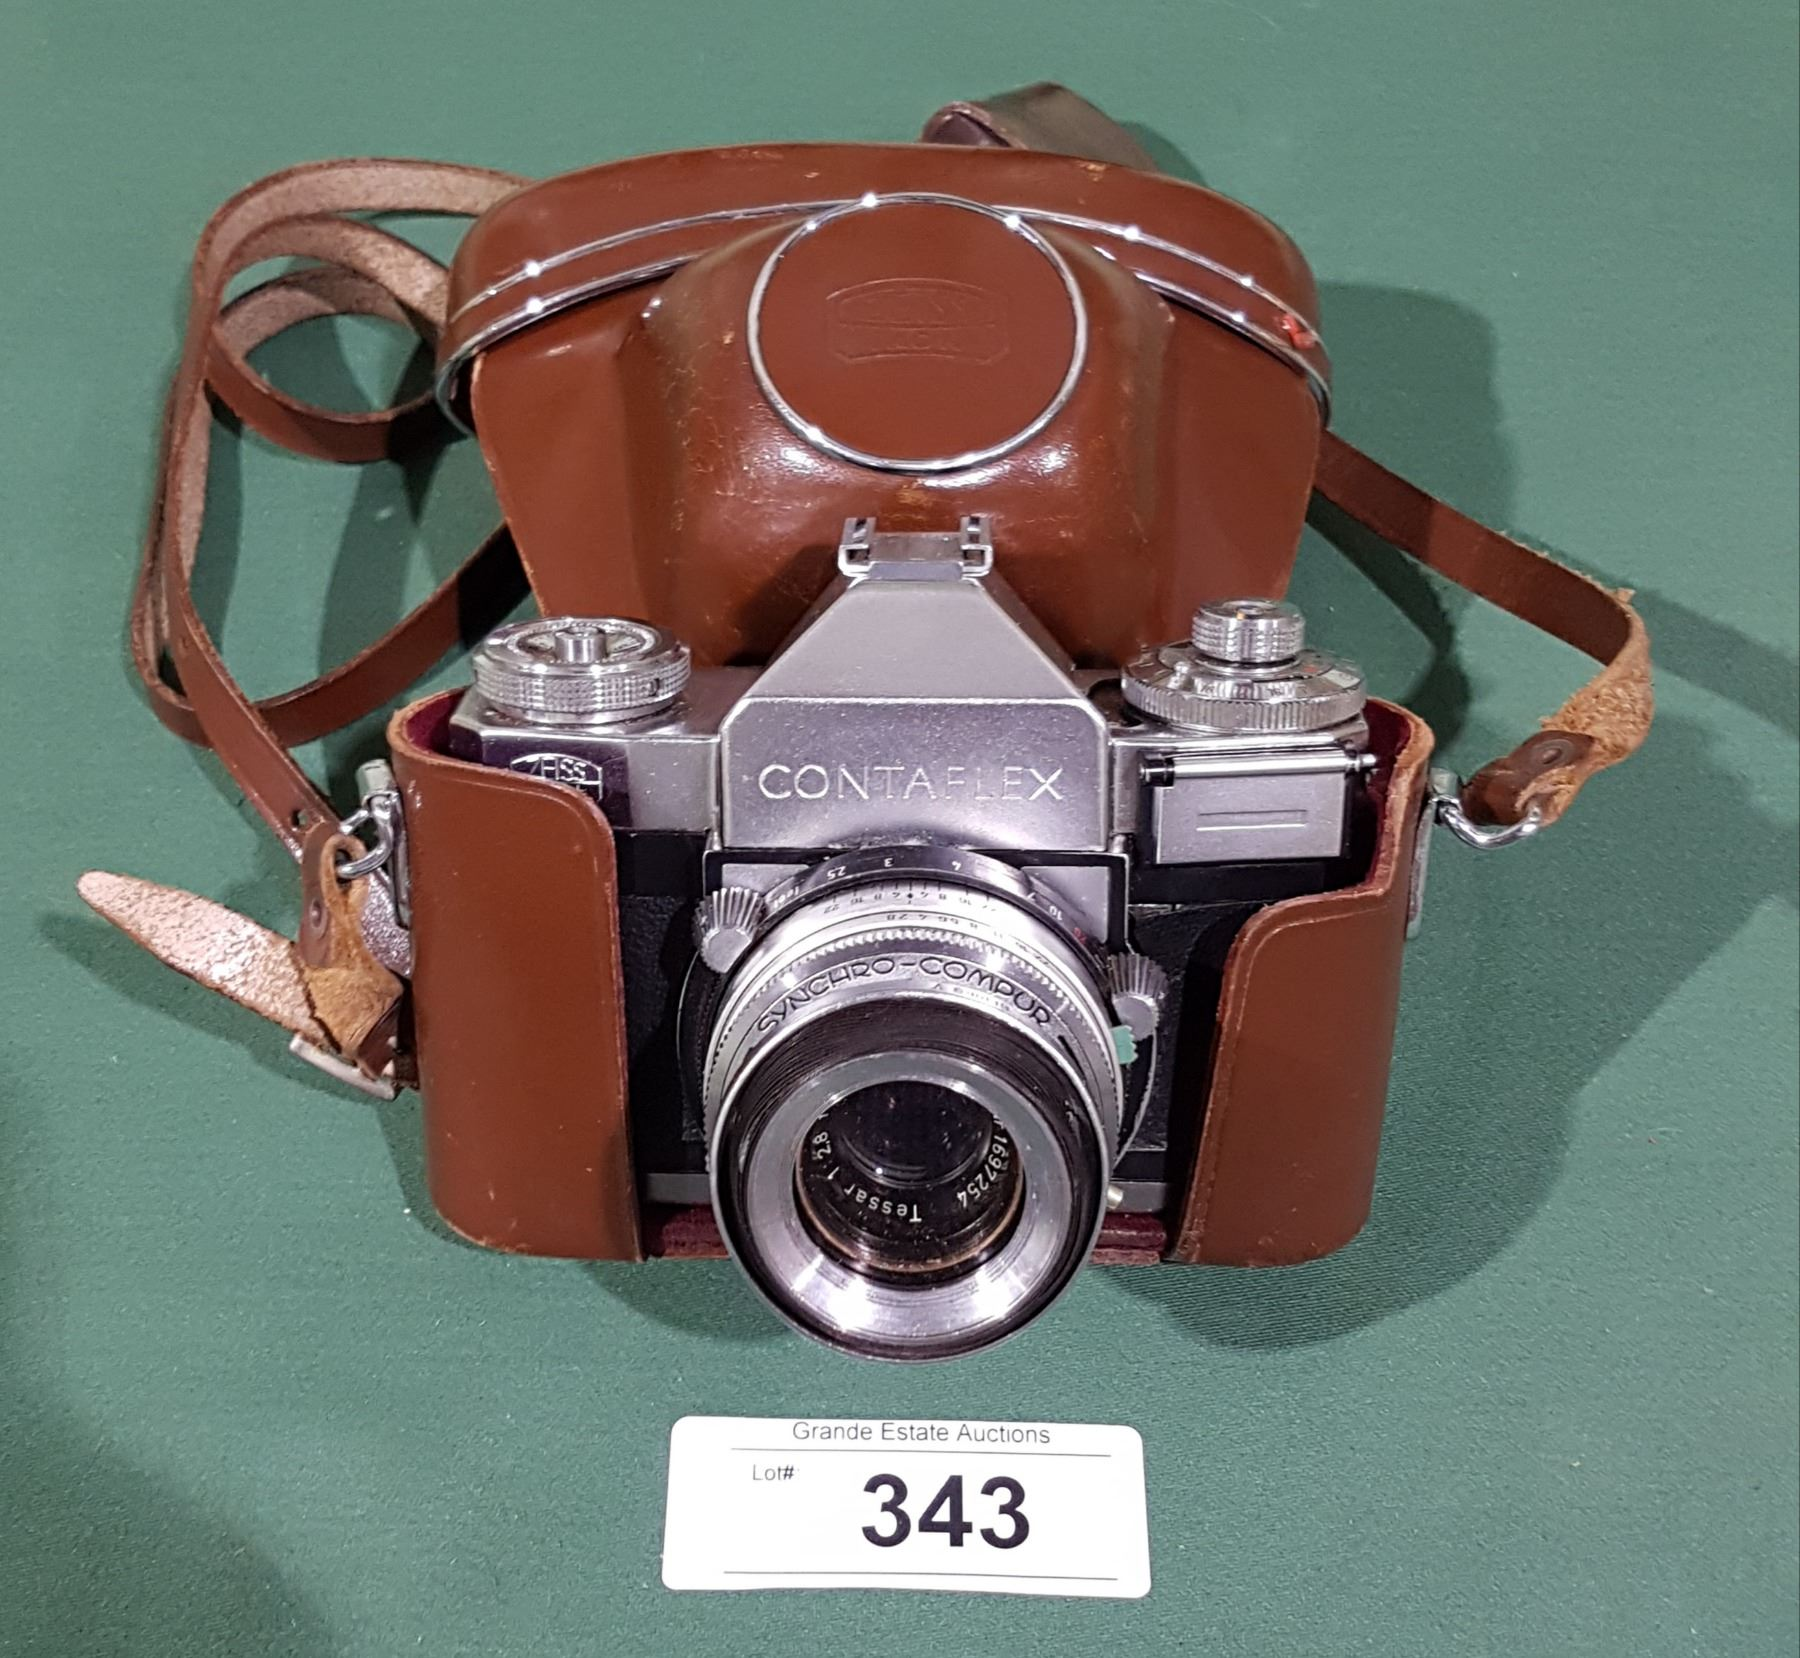 VINTAGE ZEISS ICON CONTAFLEX IV CAMERA